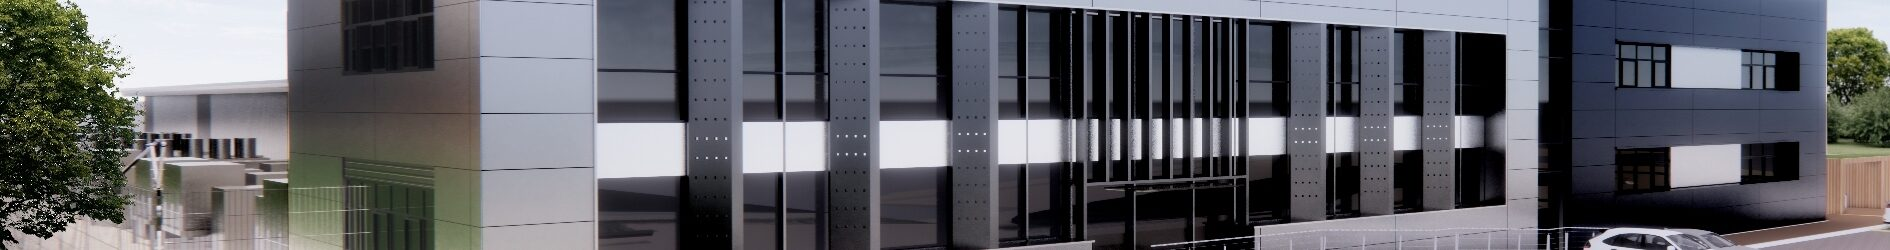 New Ionos/Fasthosts data centre